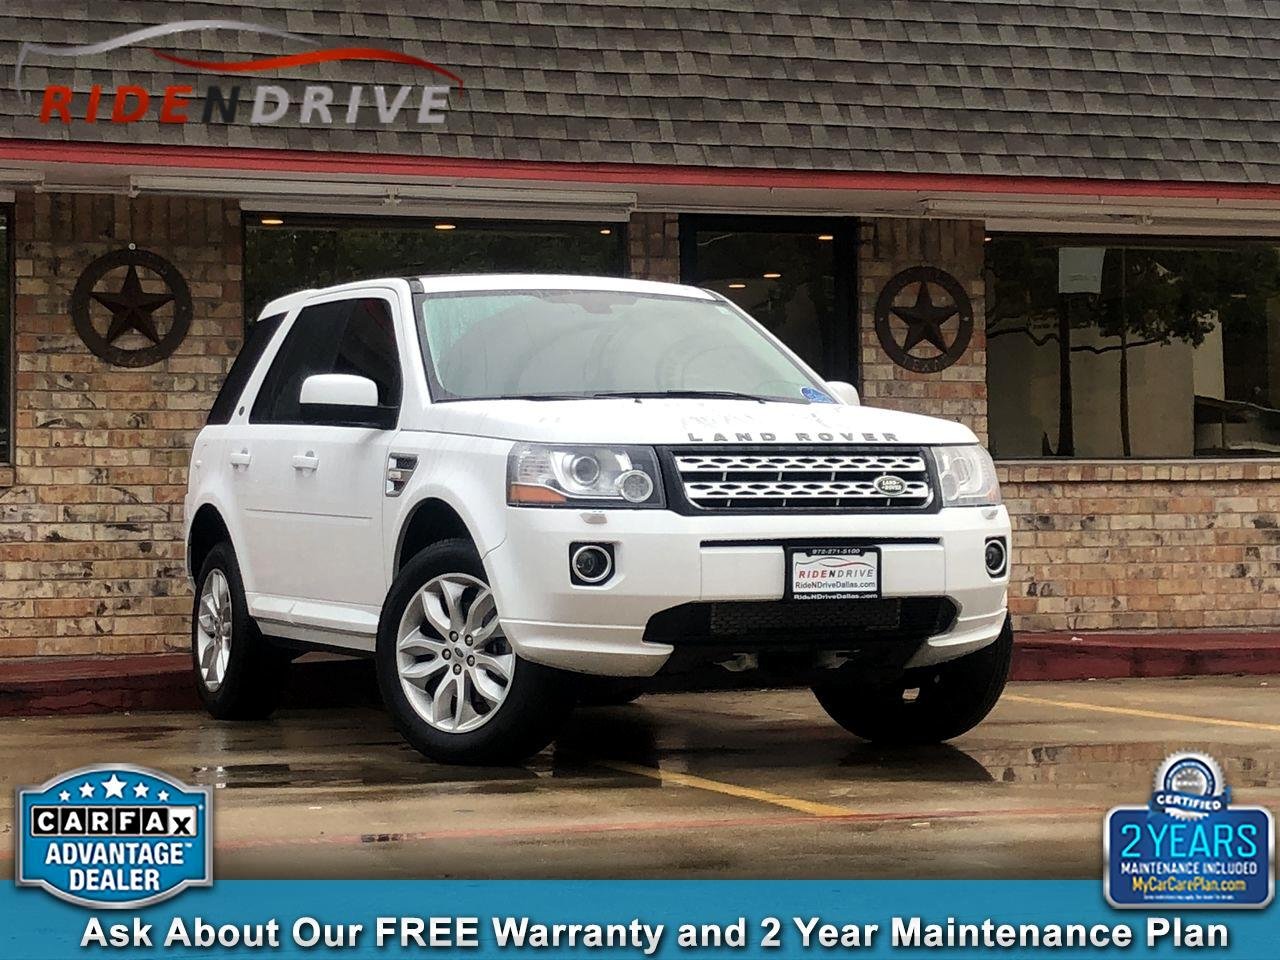 2014 Land Rover LR2 AWD 4dr HSE LUX